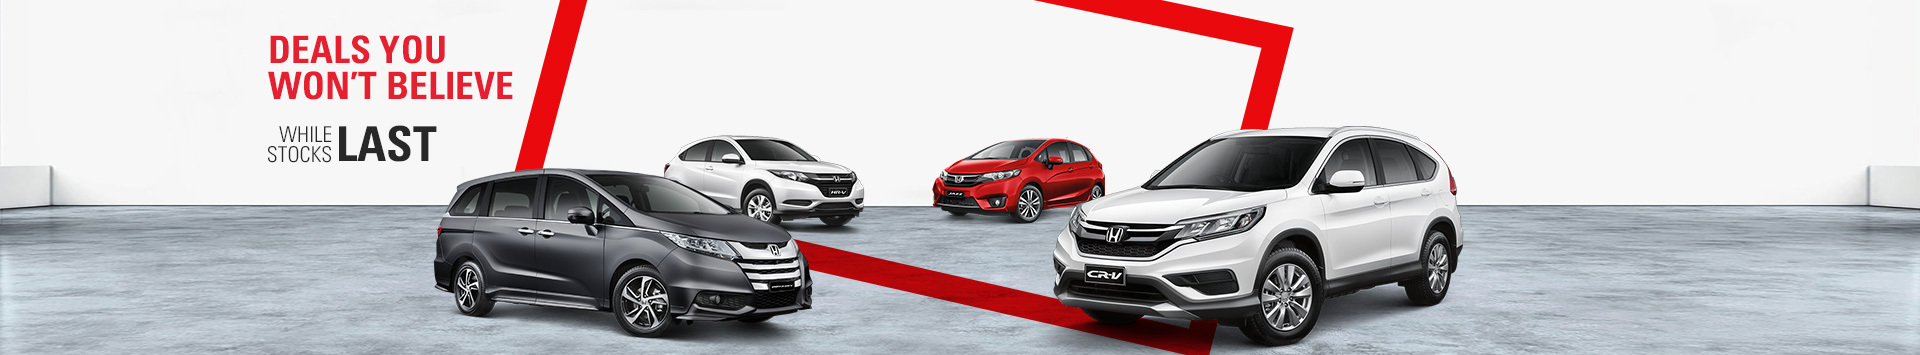 Honda - National Offer - Deals You Won't Believe, Hurry While Stocks Last